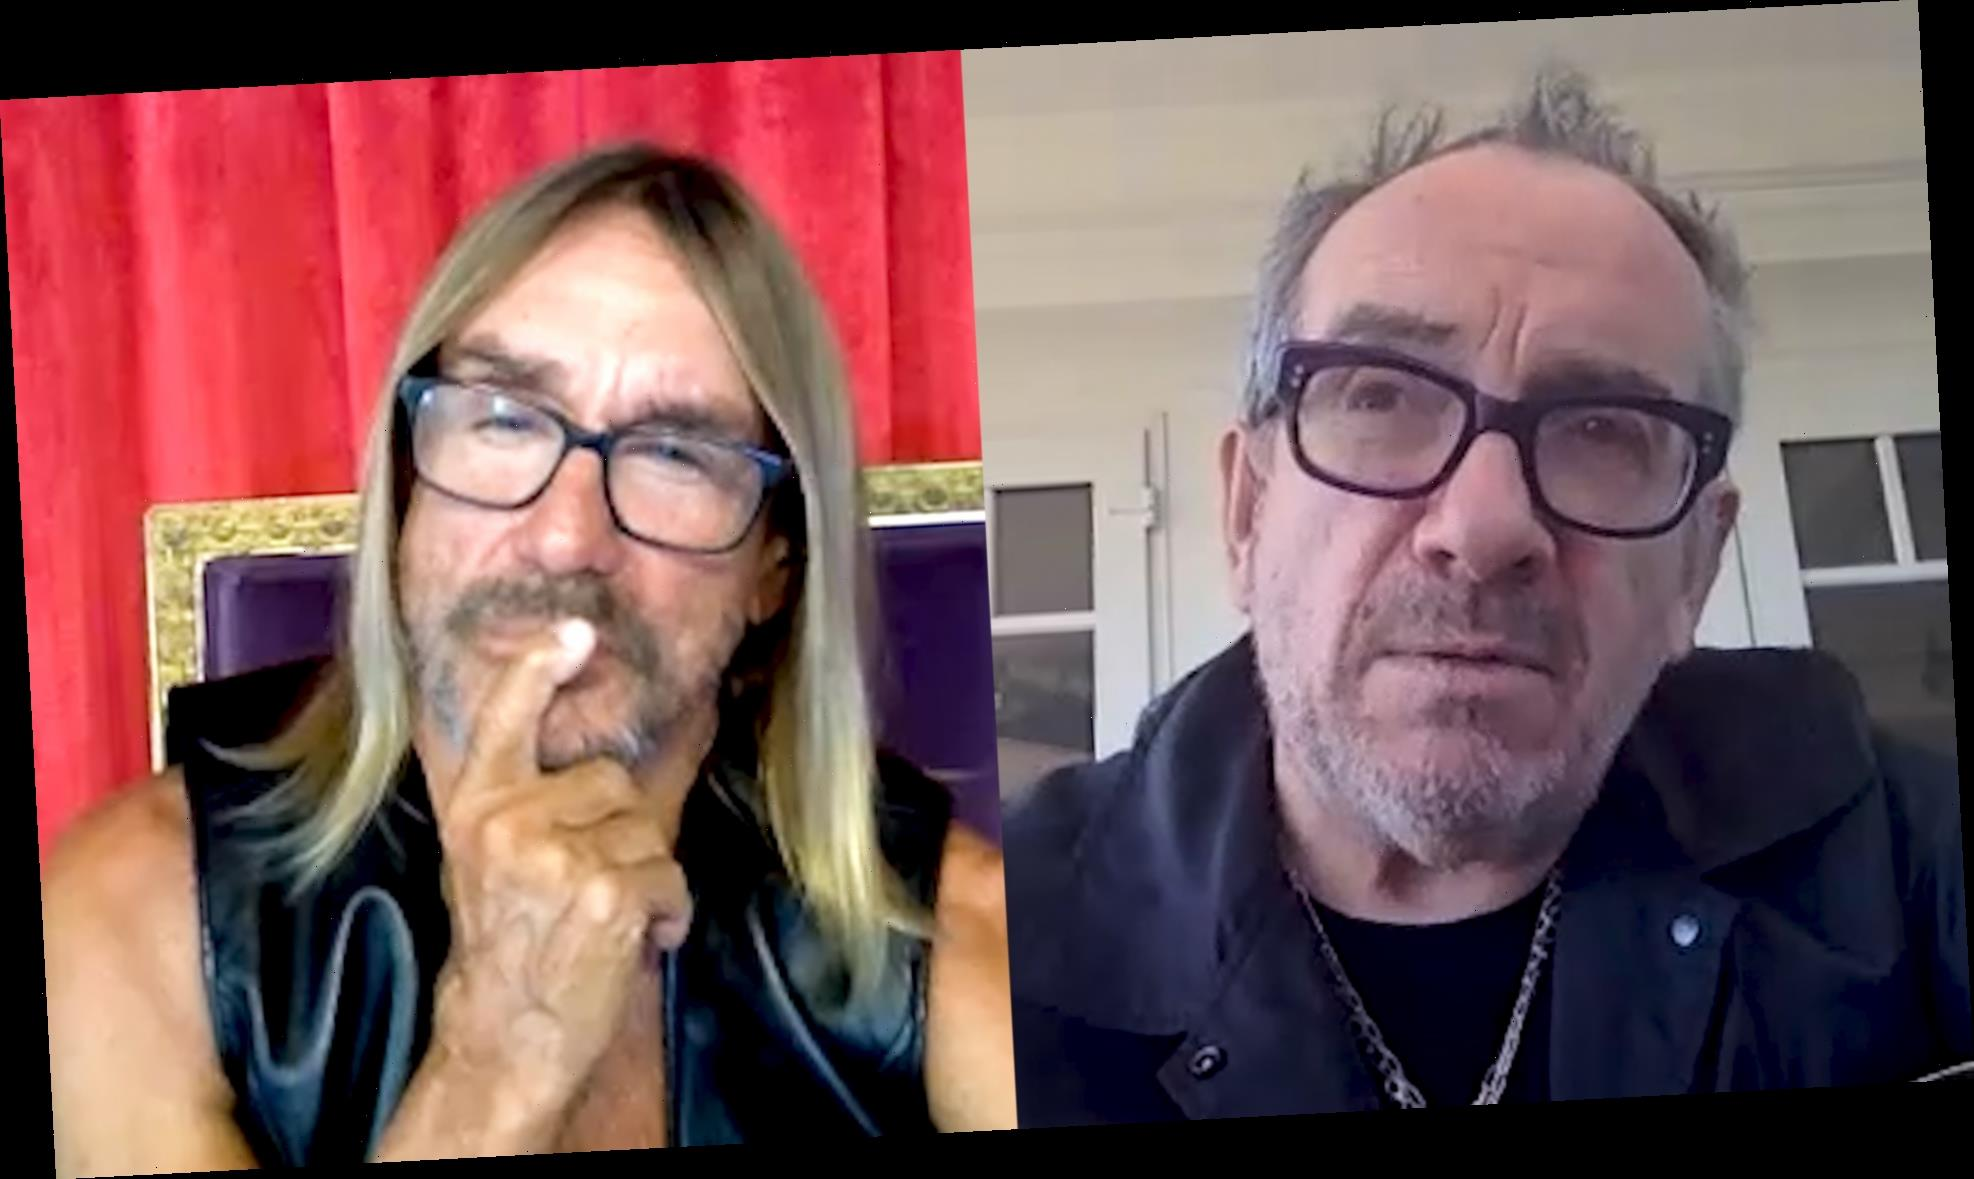 Elvis Costello and Iggy Pop Discuss Their Long-Ranging Friendship